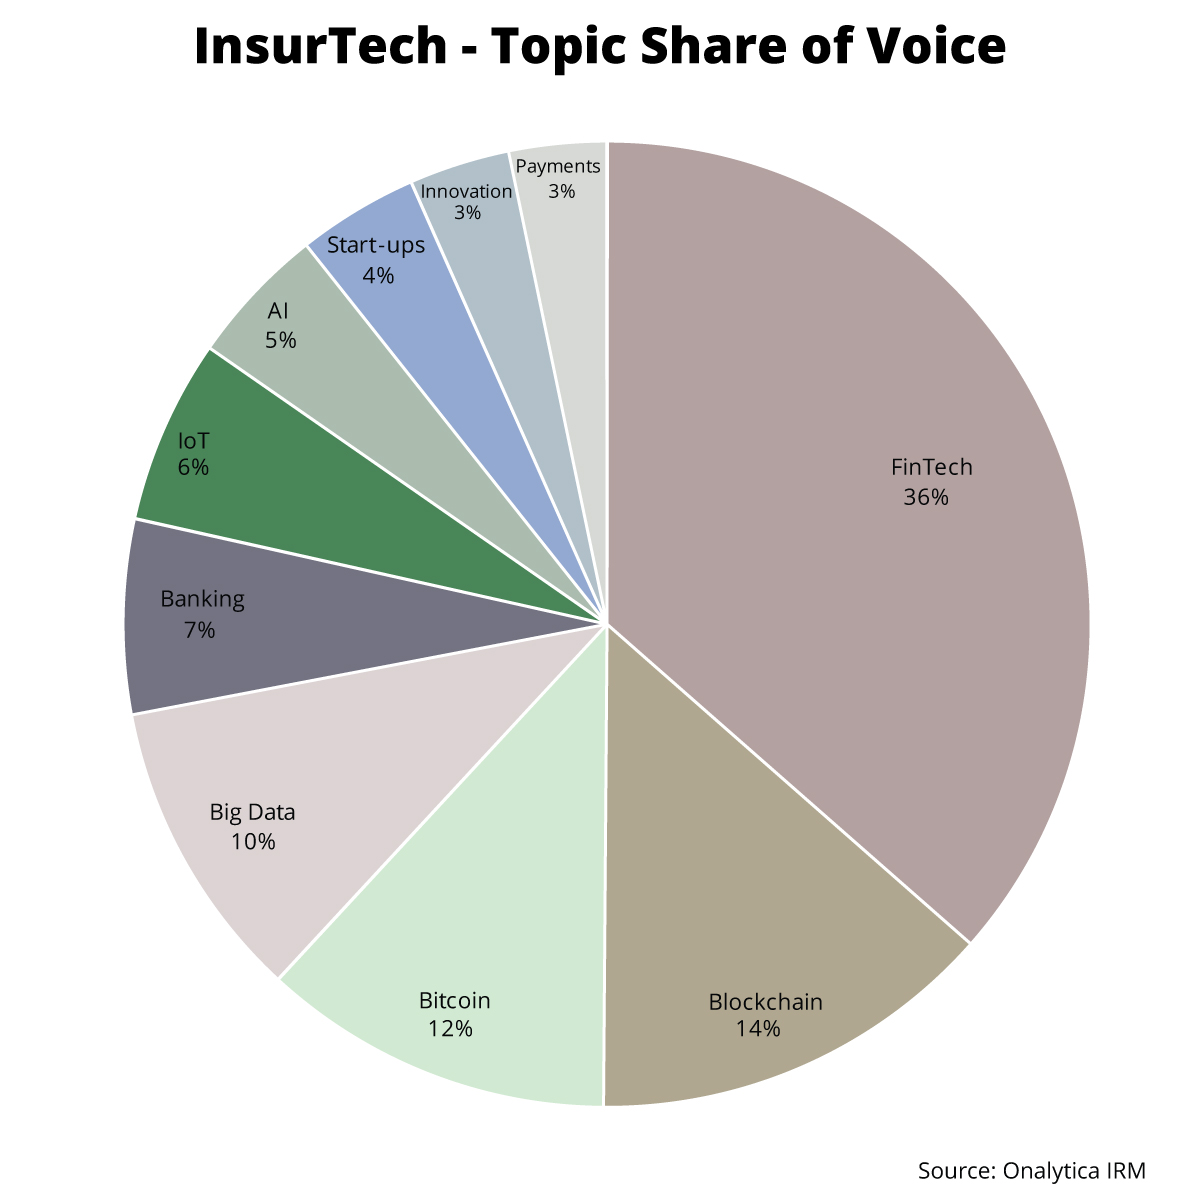 Onalytica - InsurTech Top 100 Influencers and Brands - Topic Share of Voice